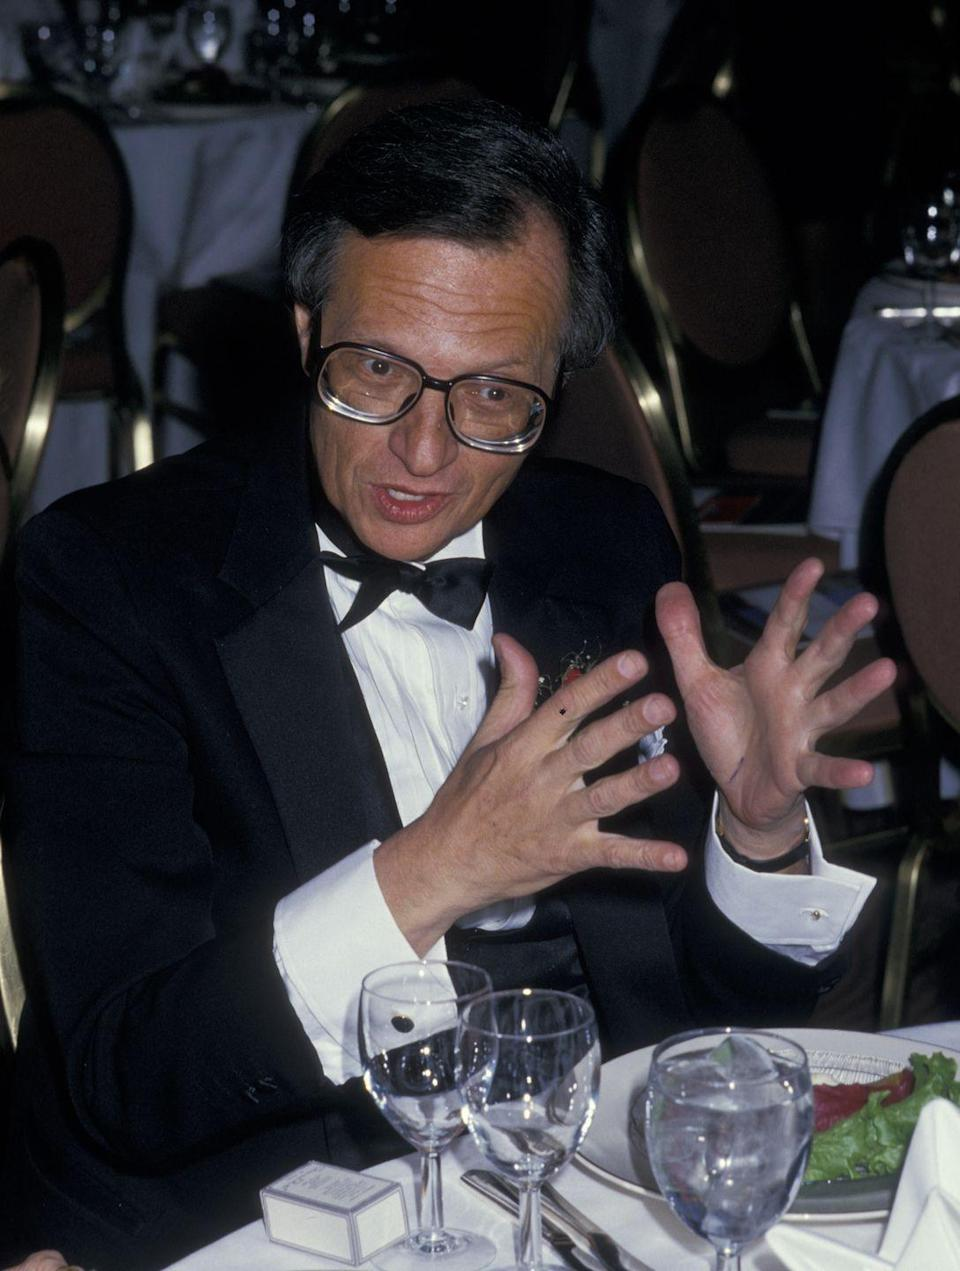 """<p>Larry King was married eight (!) times, but his third and fifth marriages were to the same person. Larry married former <em>Playboy</em> bunny Alene Akins in 1961, and they were married for two years before he filed for divorce in 1963. In 1969, Larry and Alene reunited and remarried, only to divorce (yep) again in 1972. In 2017, Larry mourned the loss of his ex-wife, <a href=""""https://twitter.com/kingsthings/status/827643928463564800"""" rel=""""nofollow noopener"""" target=""""_blank"""" data-ylk=""""slk:sharing on Twitter"""" class=""""link rapid-noclick-resp"""">sharing on Twitter</a>, """"So very saddened over the passing of Alene Akins, who died peacefully with our children Chaia and Andy by her side. She was a grand lady.""""</p>"""